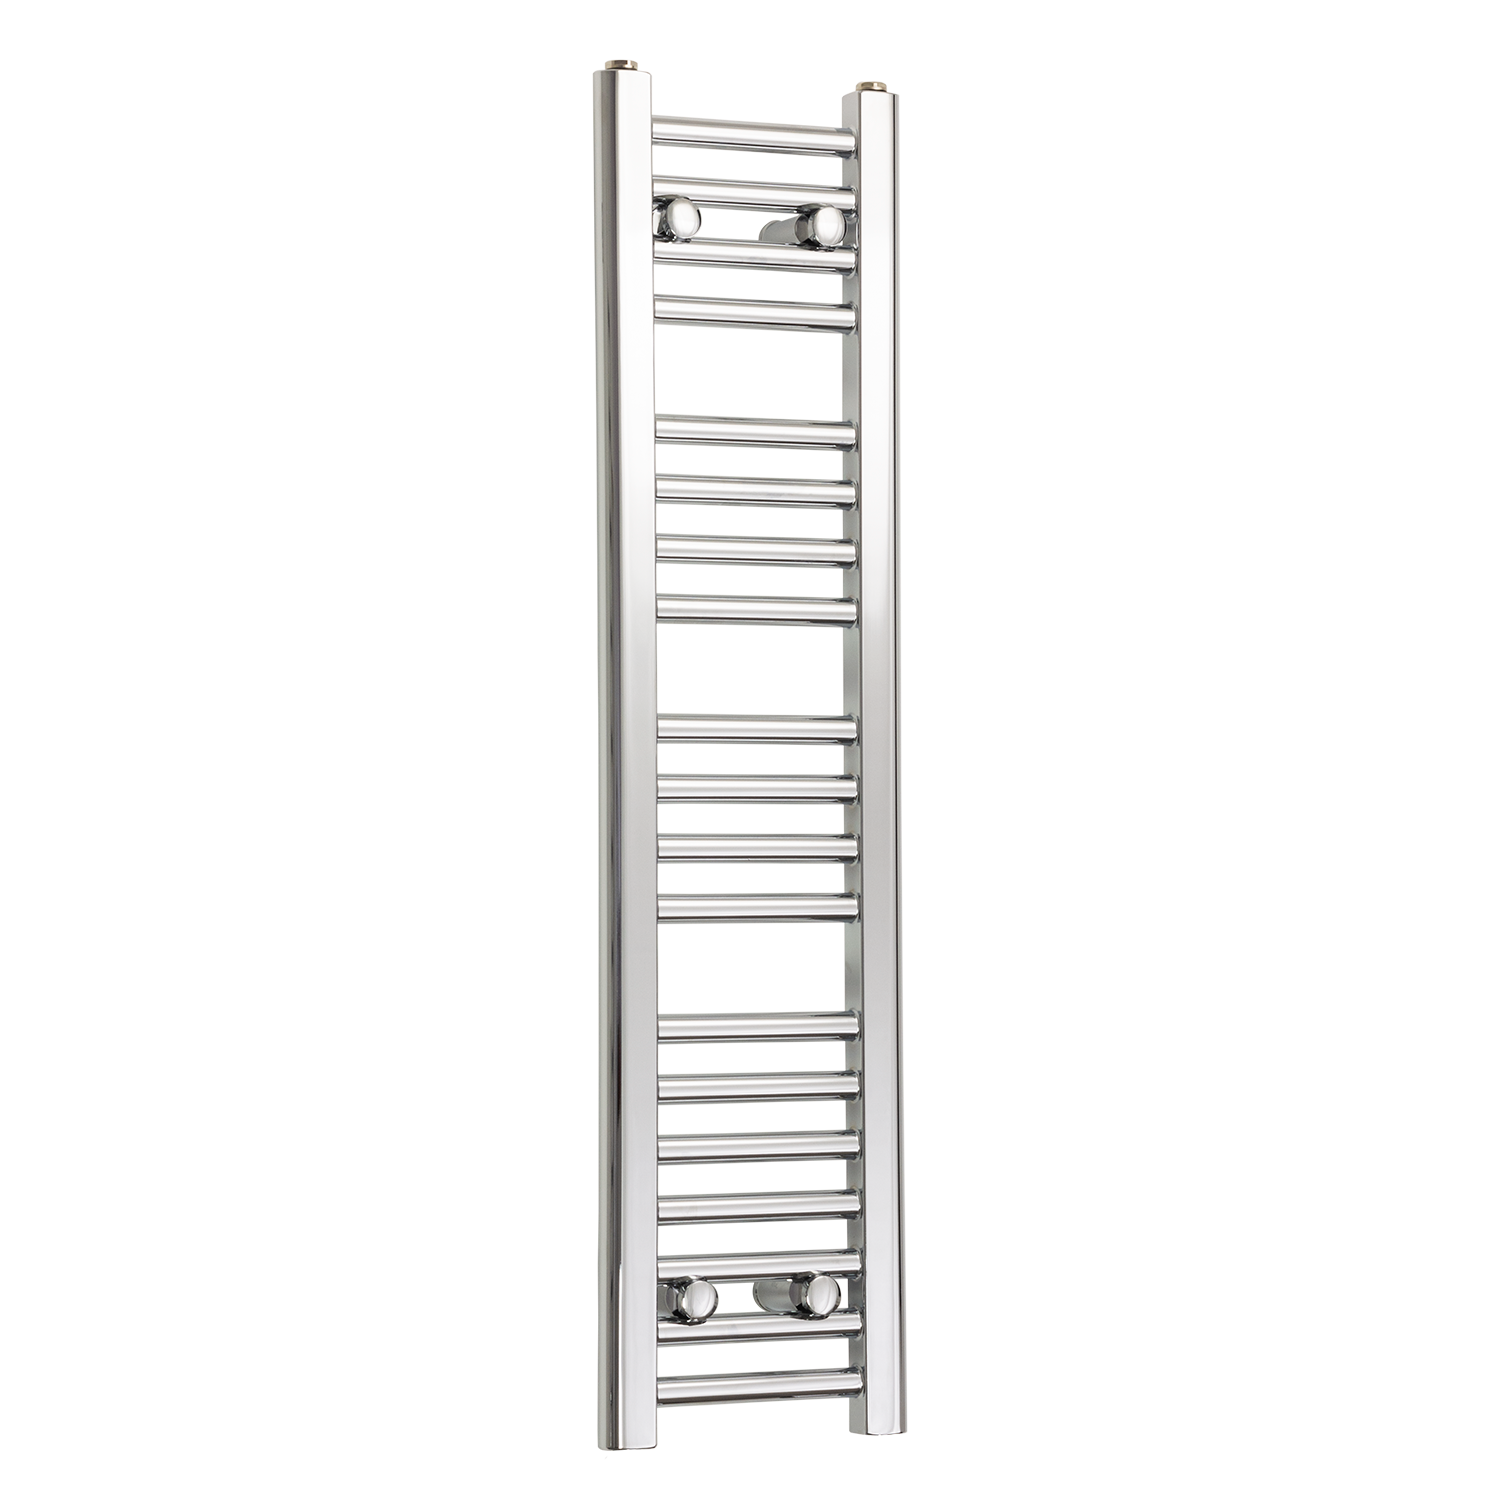 250mm Wide 1000mm High Chrome Towel Rail Radiator